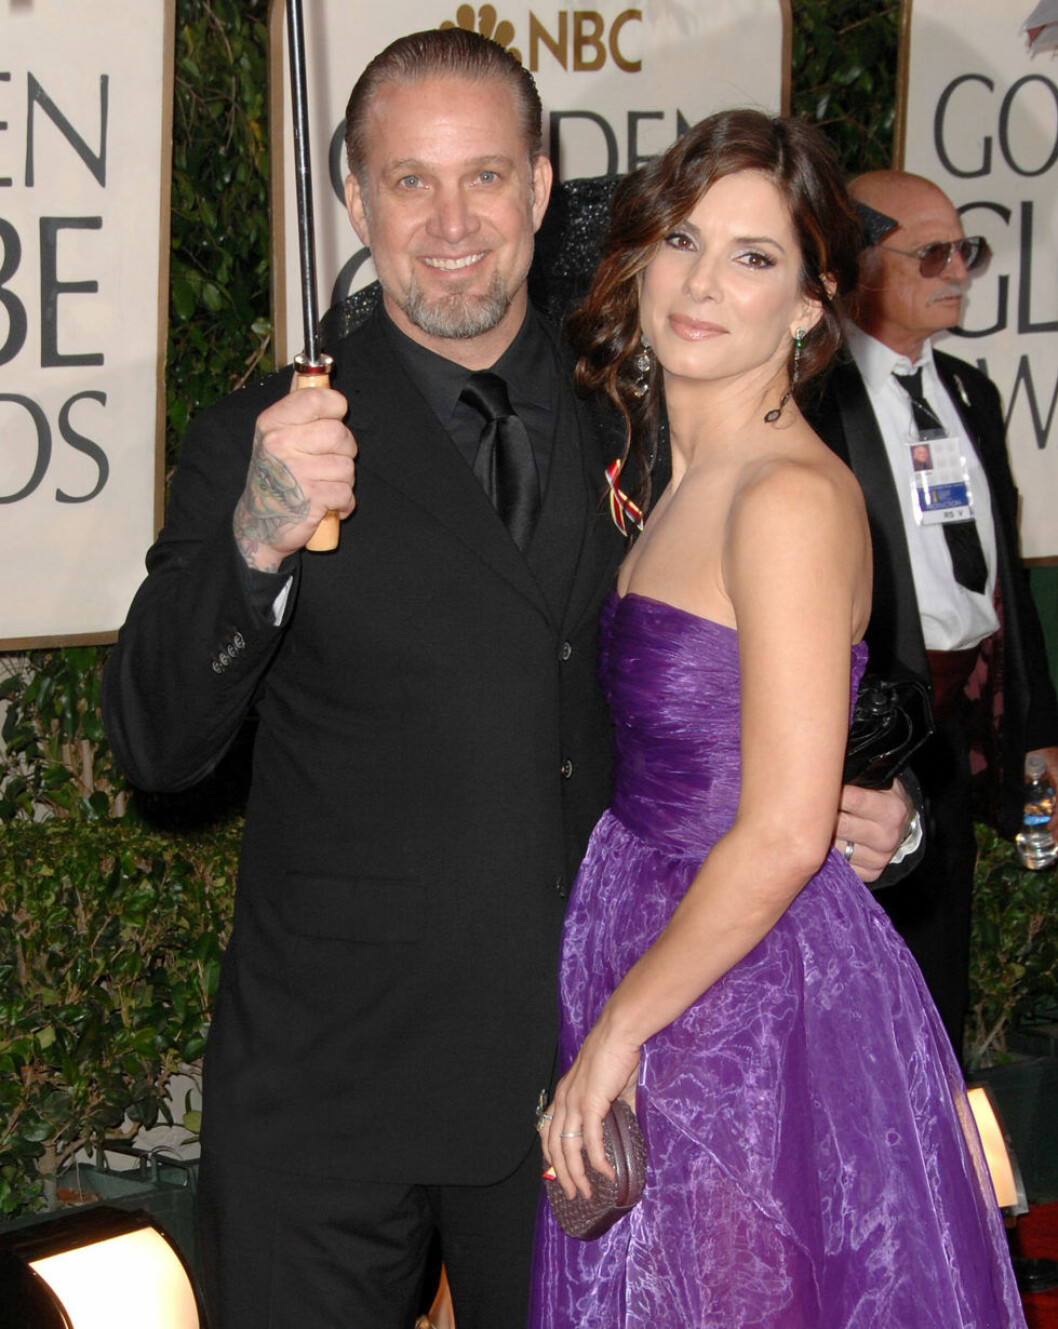 The 67th Annual Golden Globe Awards, Arrivals, Beverly Hilton Hotel, Los Angeles, America - 17 Jan 2010